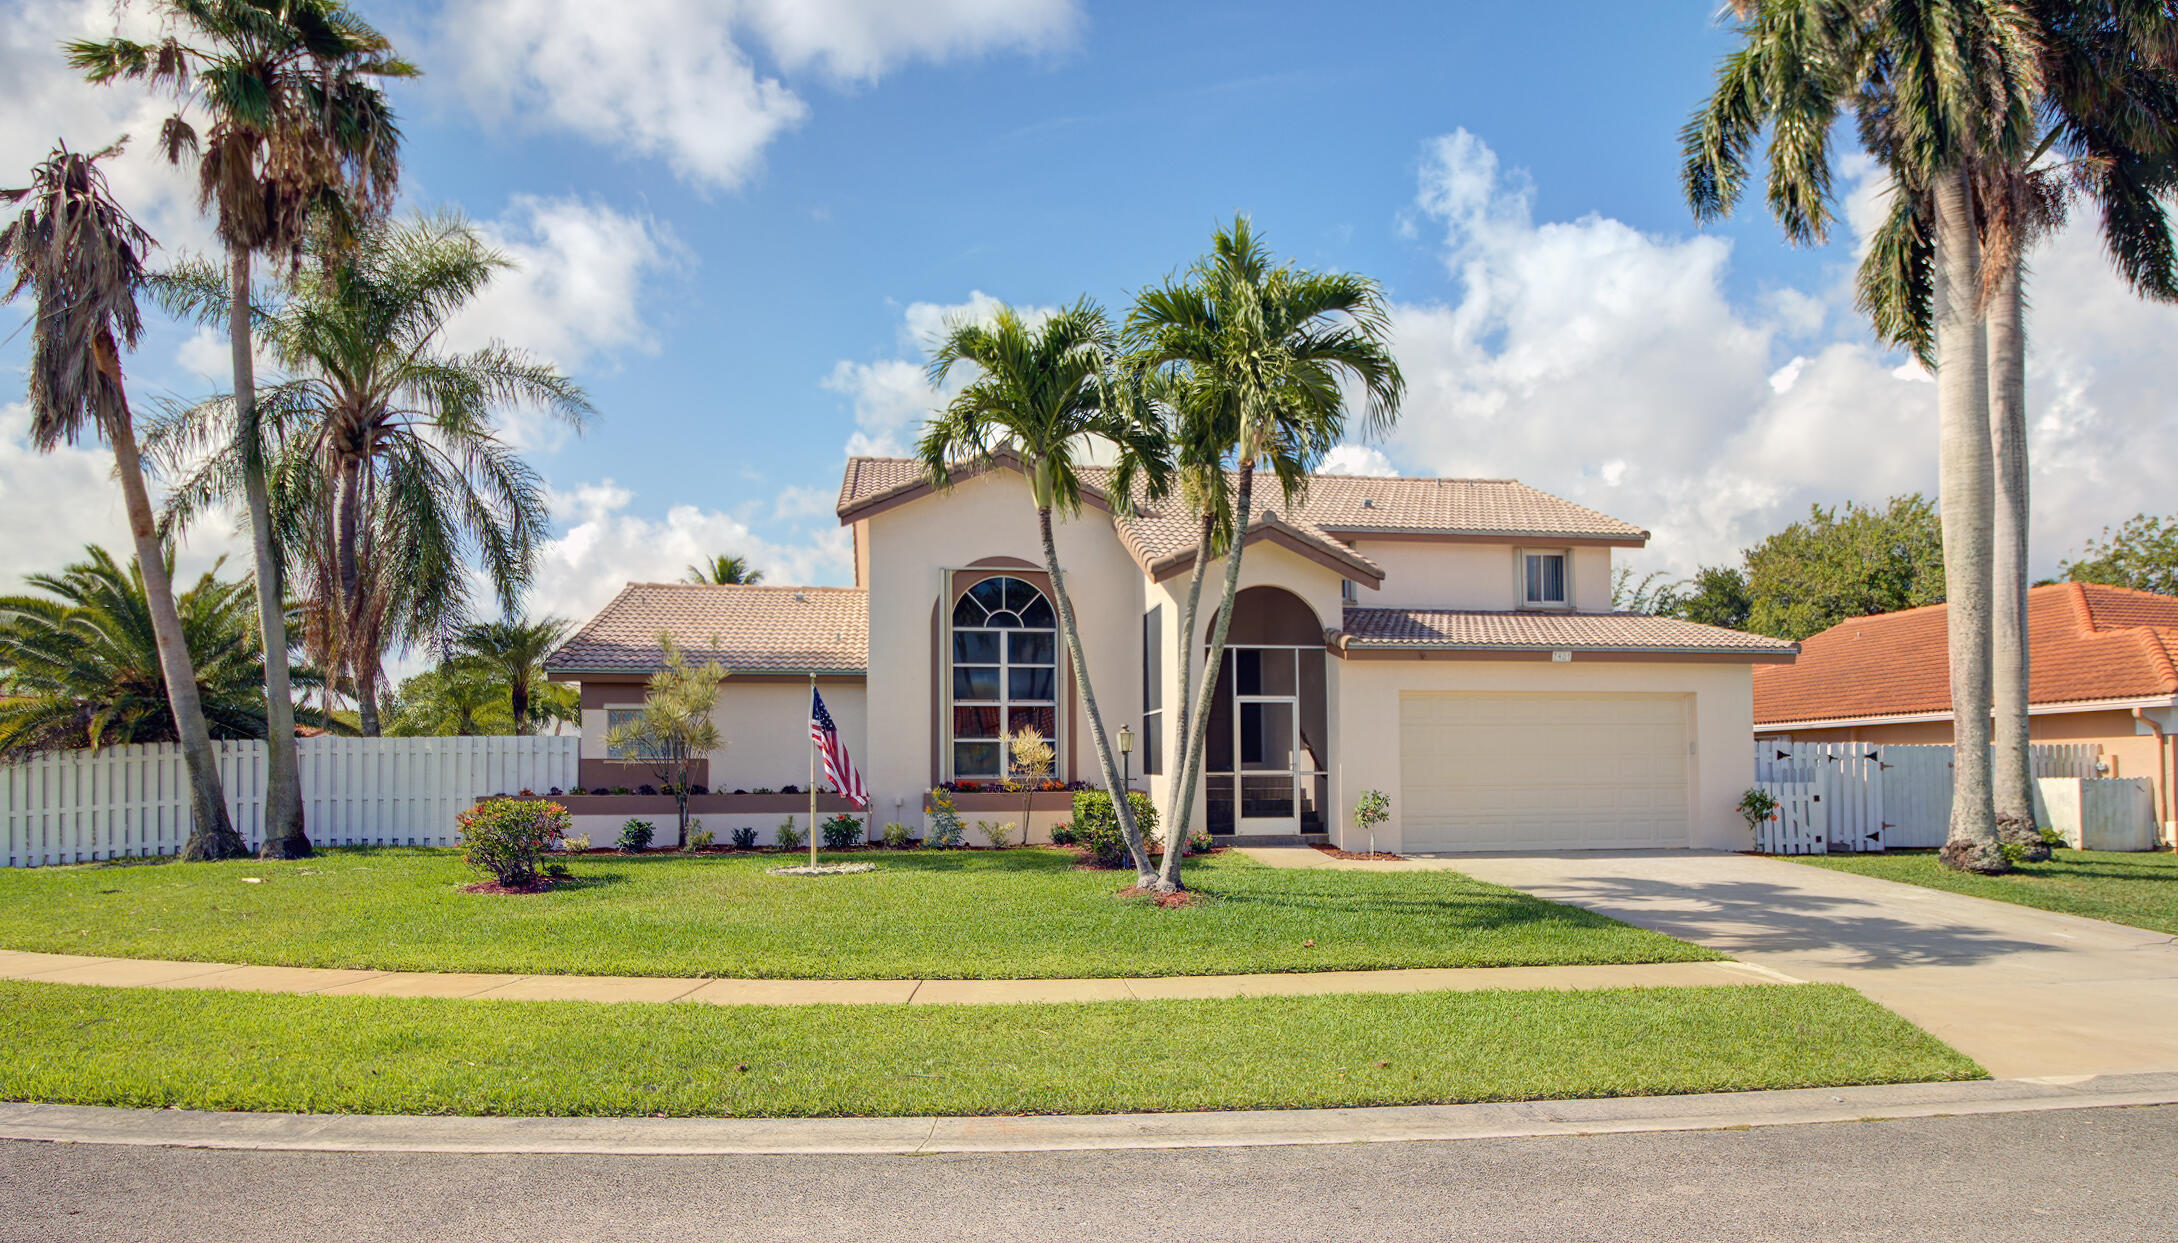 7401  Anadale Circle  For Sale 10724245, FL